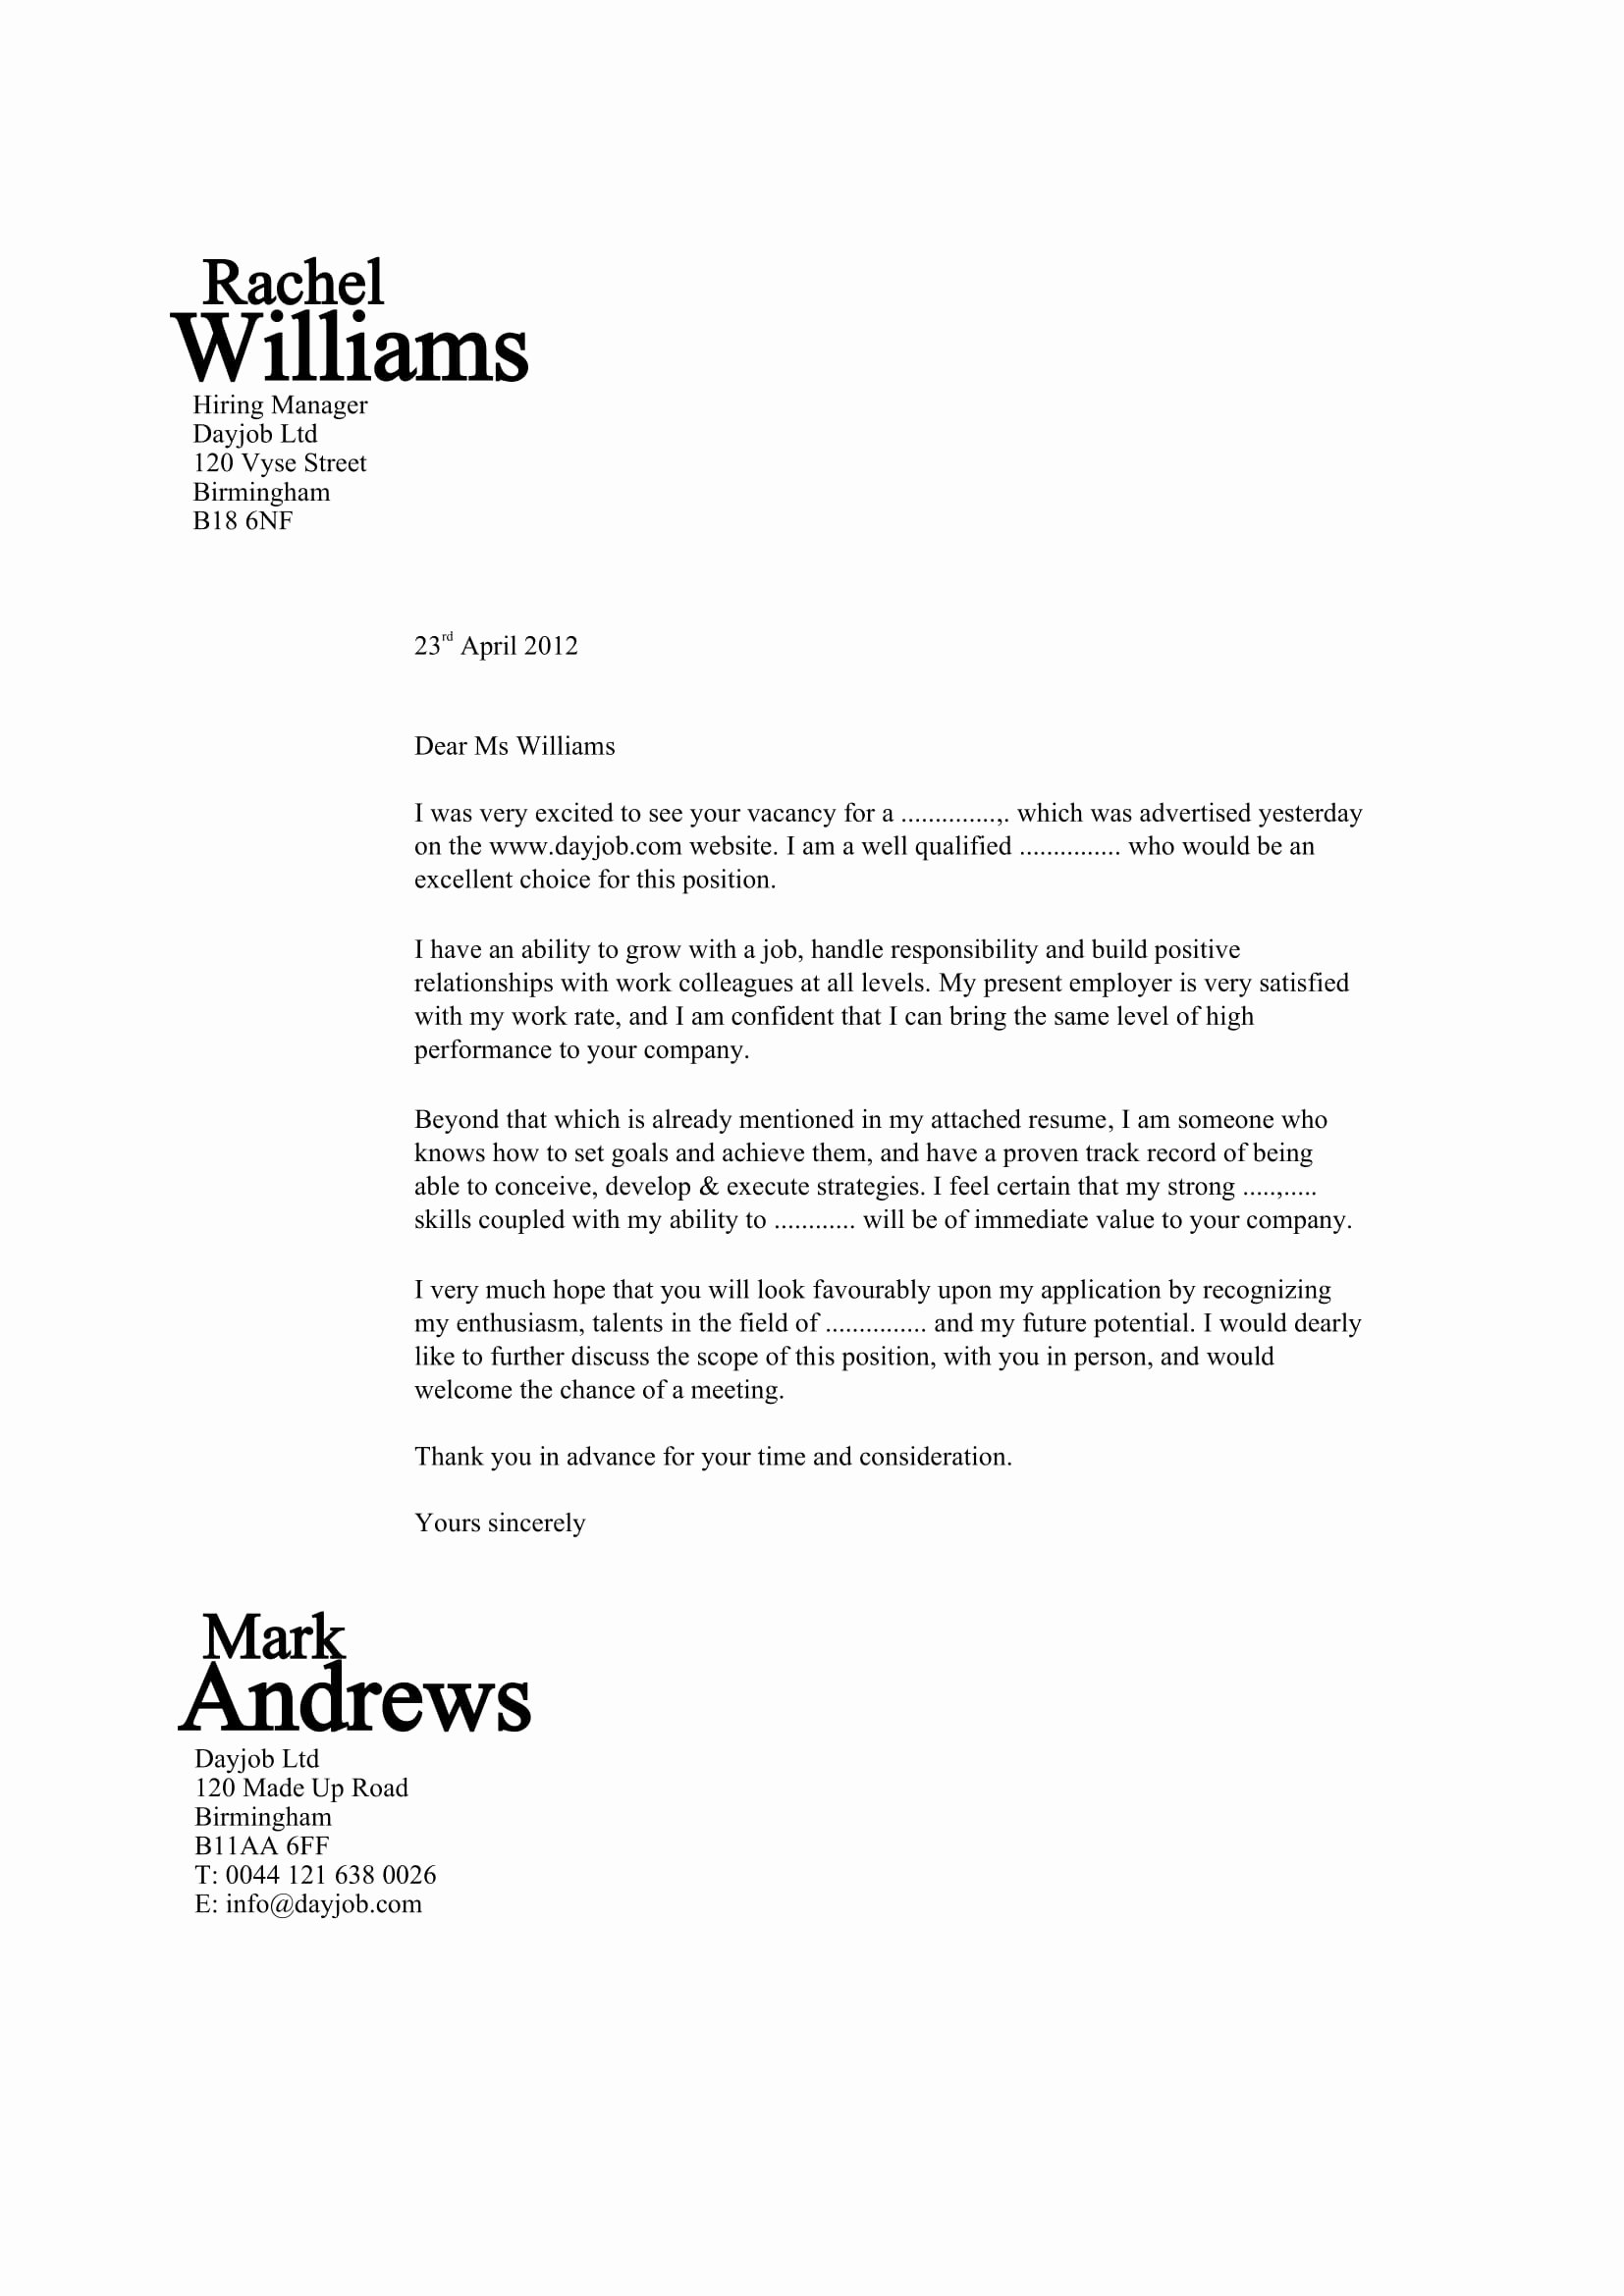 Sample Letters for Employment Unique 32 Best Sample Cover Letter Examples for Job Applicants